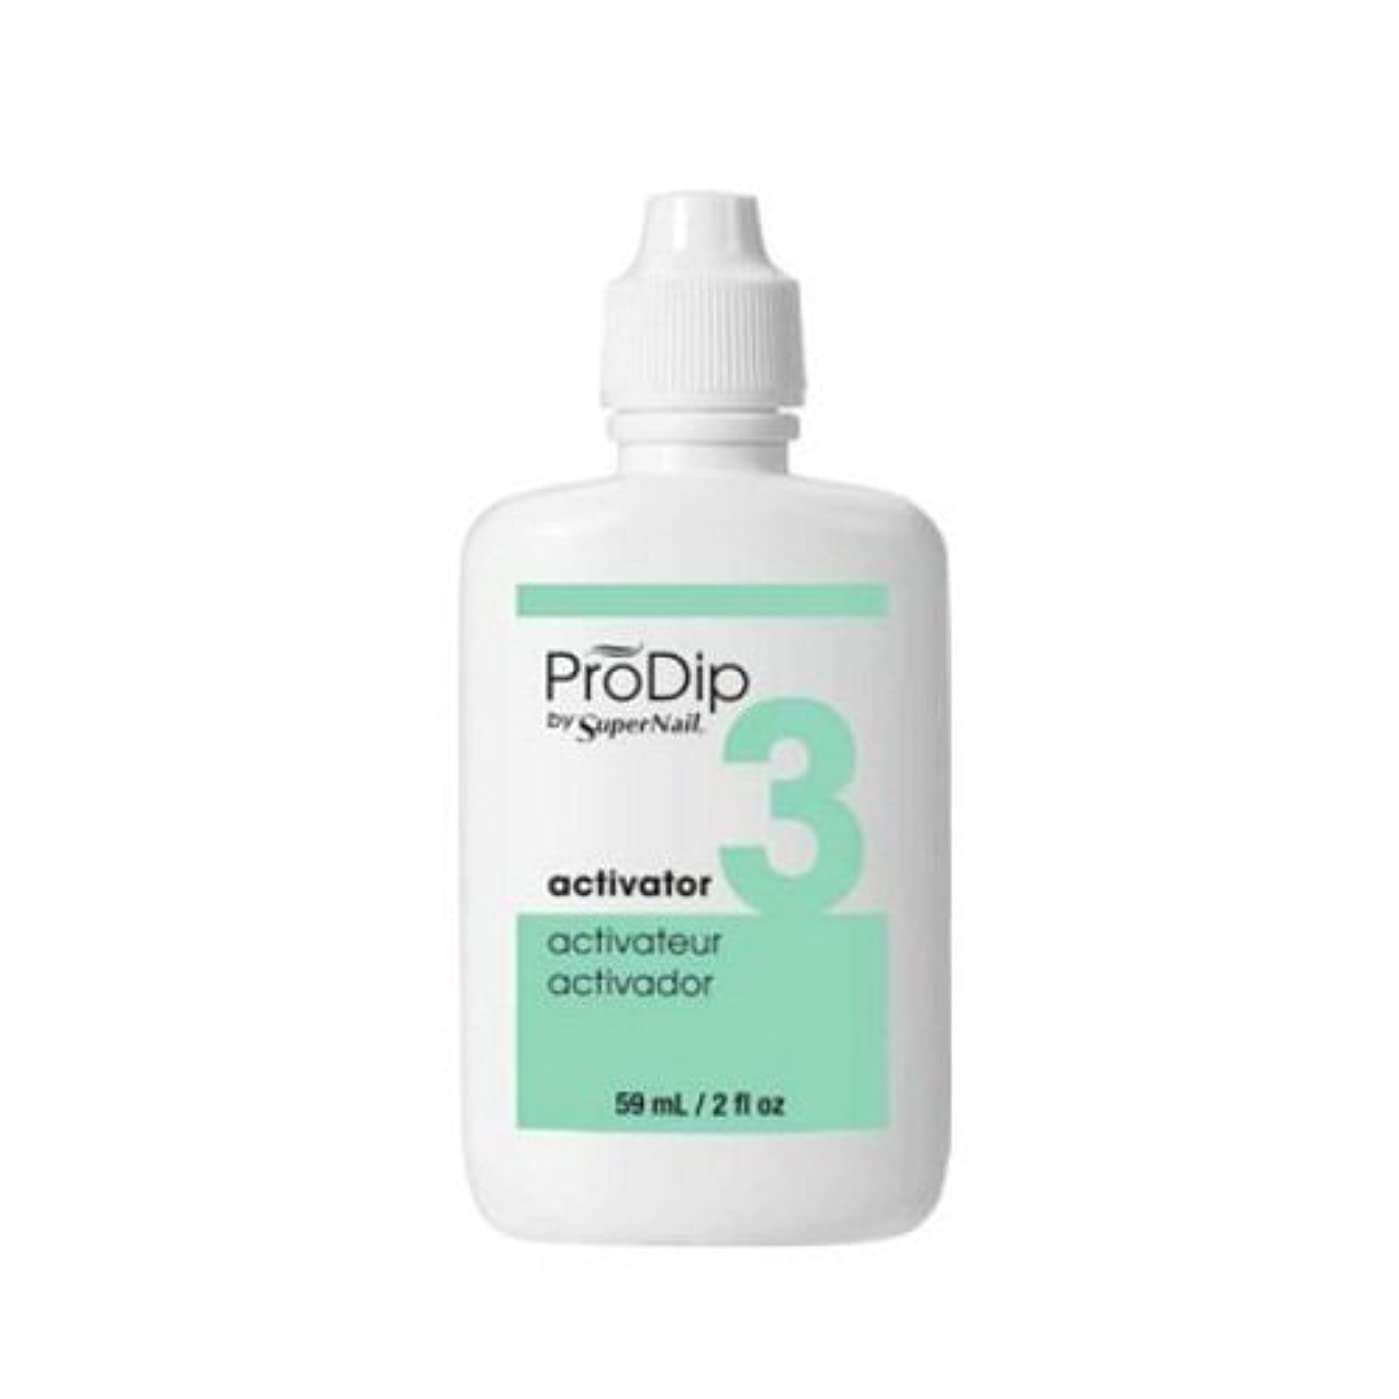 SuperNail ProDip - Activator - 59 ml/2 oz